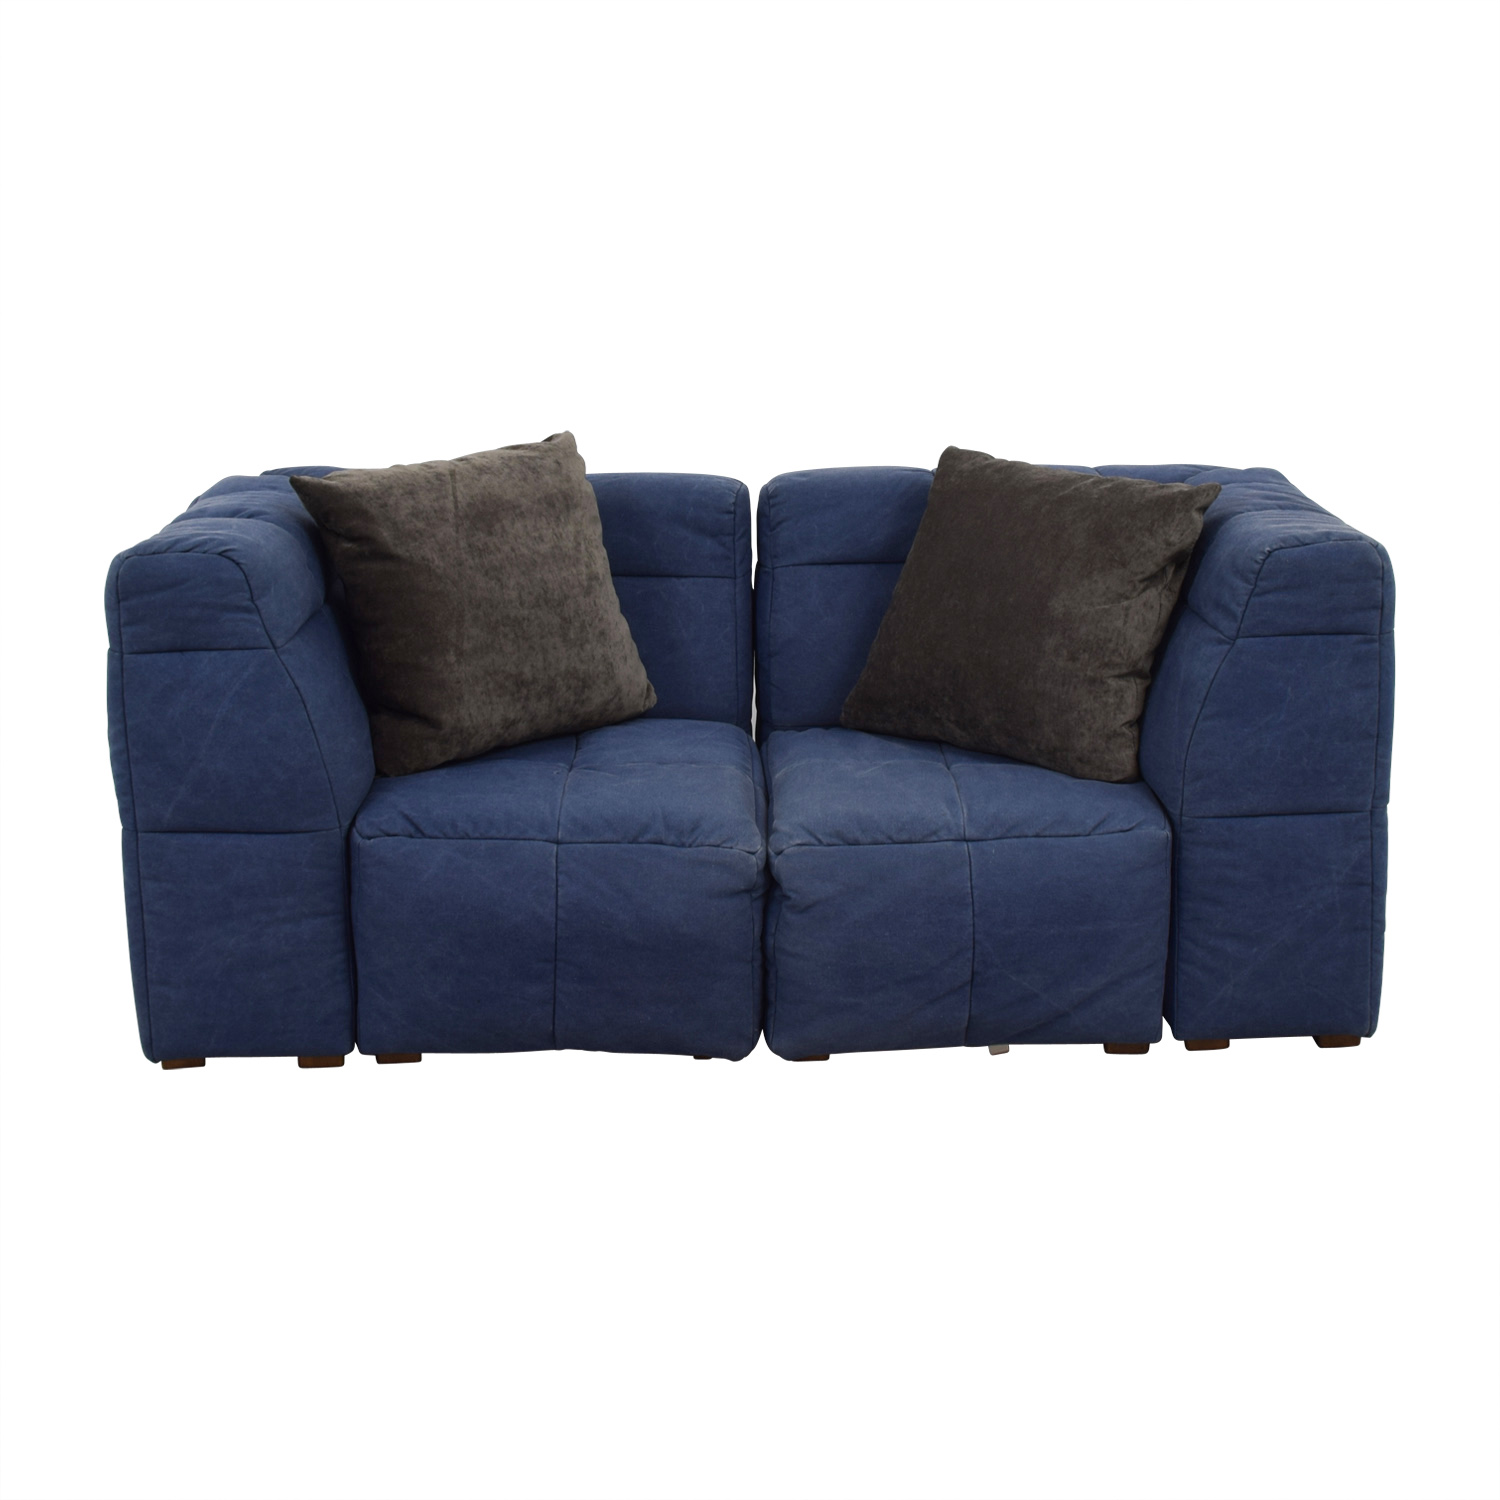 Pottery Barn Pottery Barn Blue Corner Piece Loveseat for sale